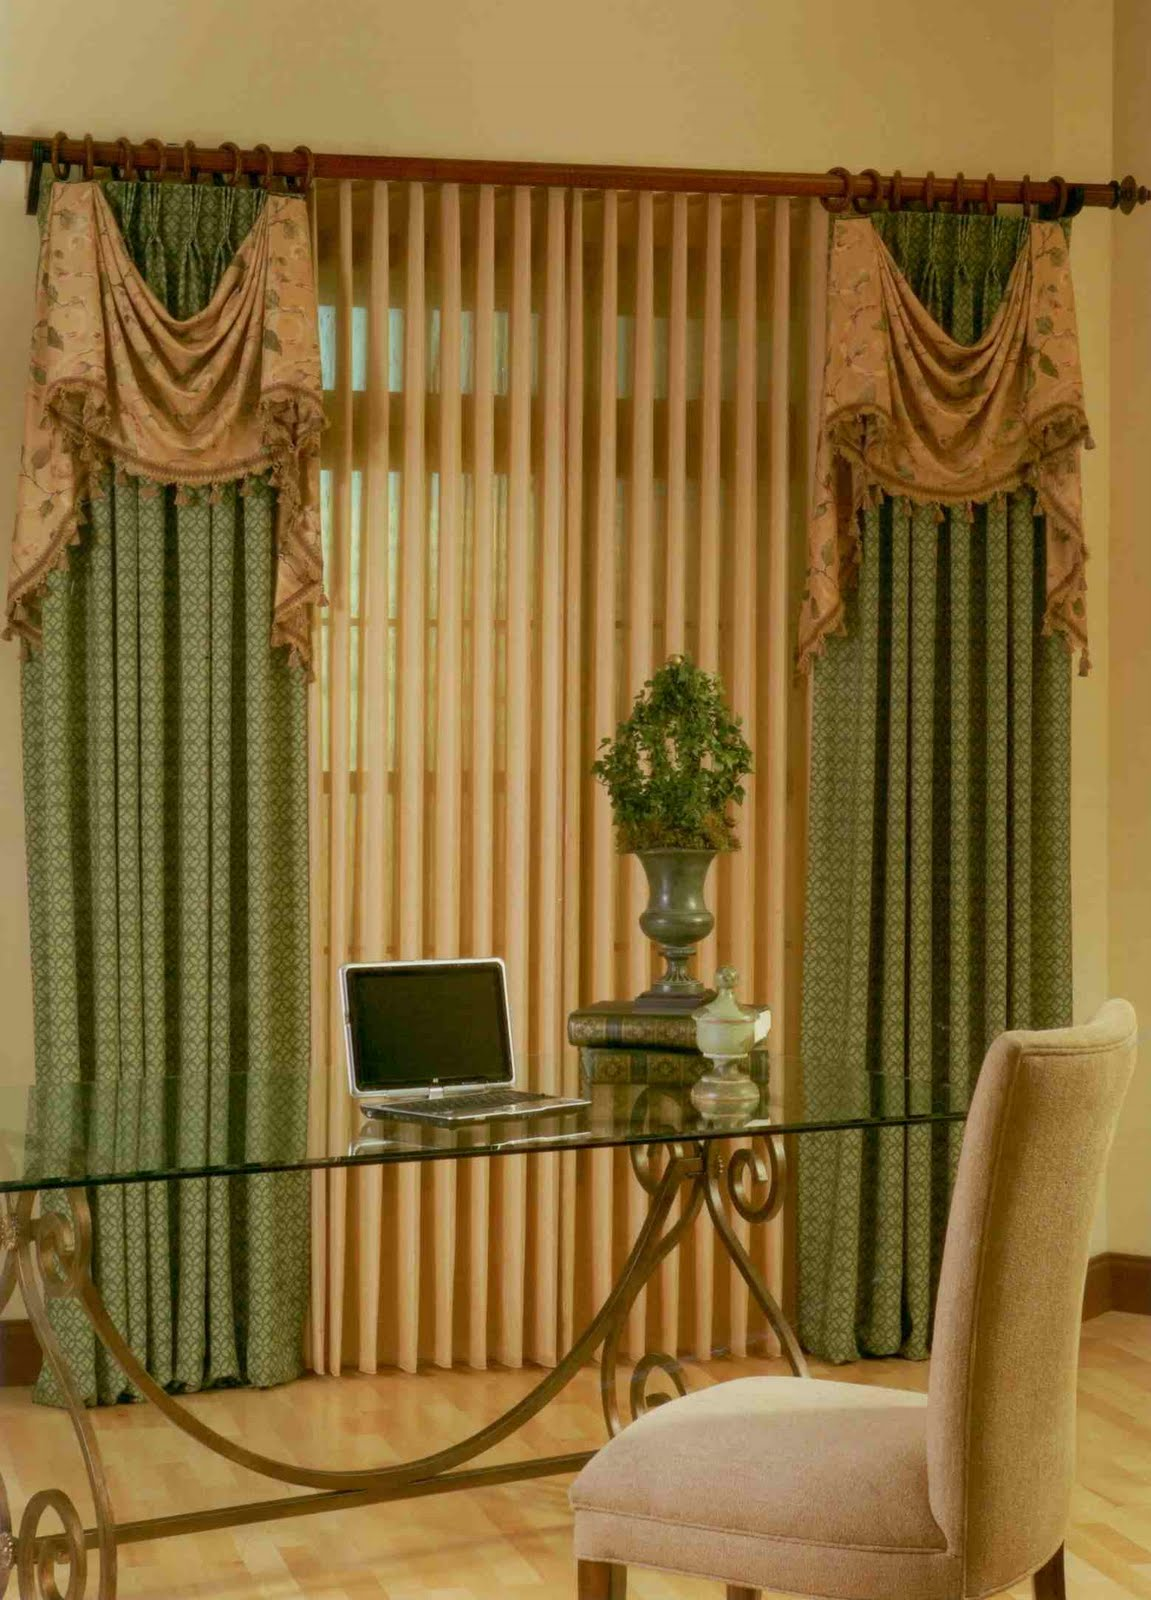 Blinds And Curtains Together Curtains And Vertical Blinds Together Decorate The House With